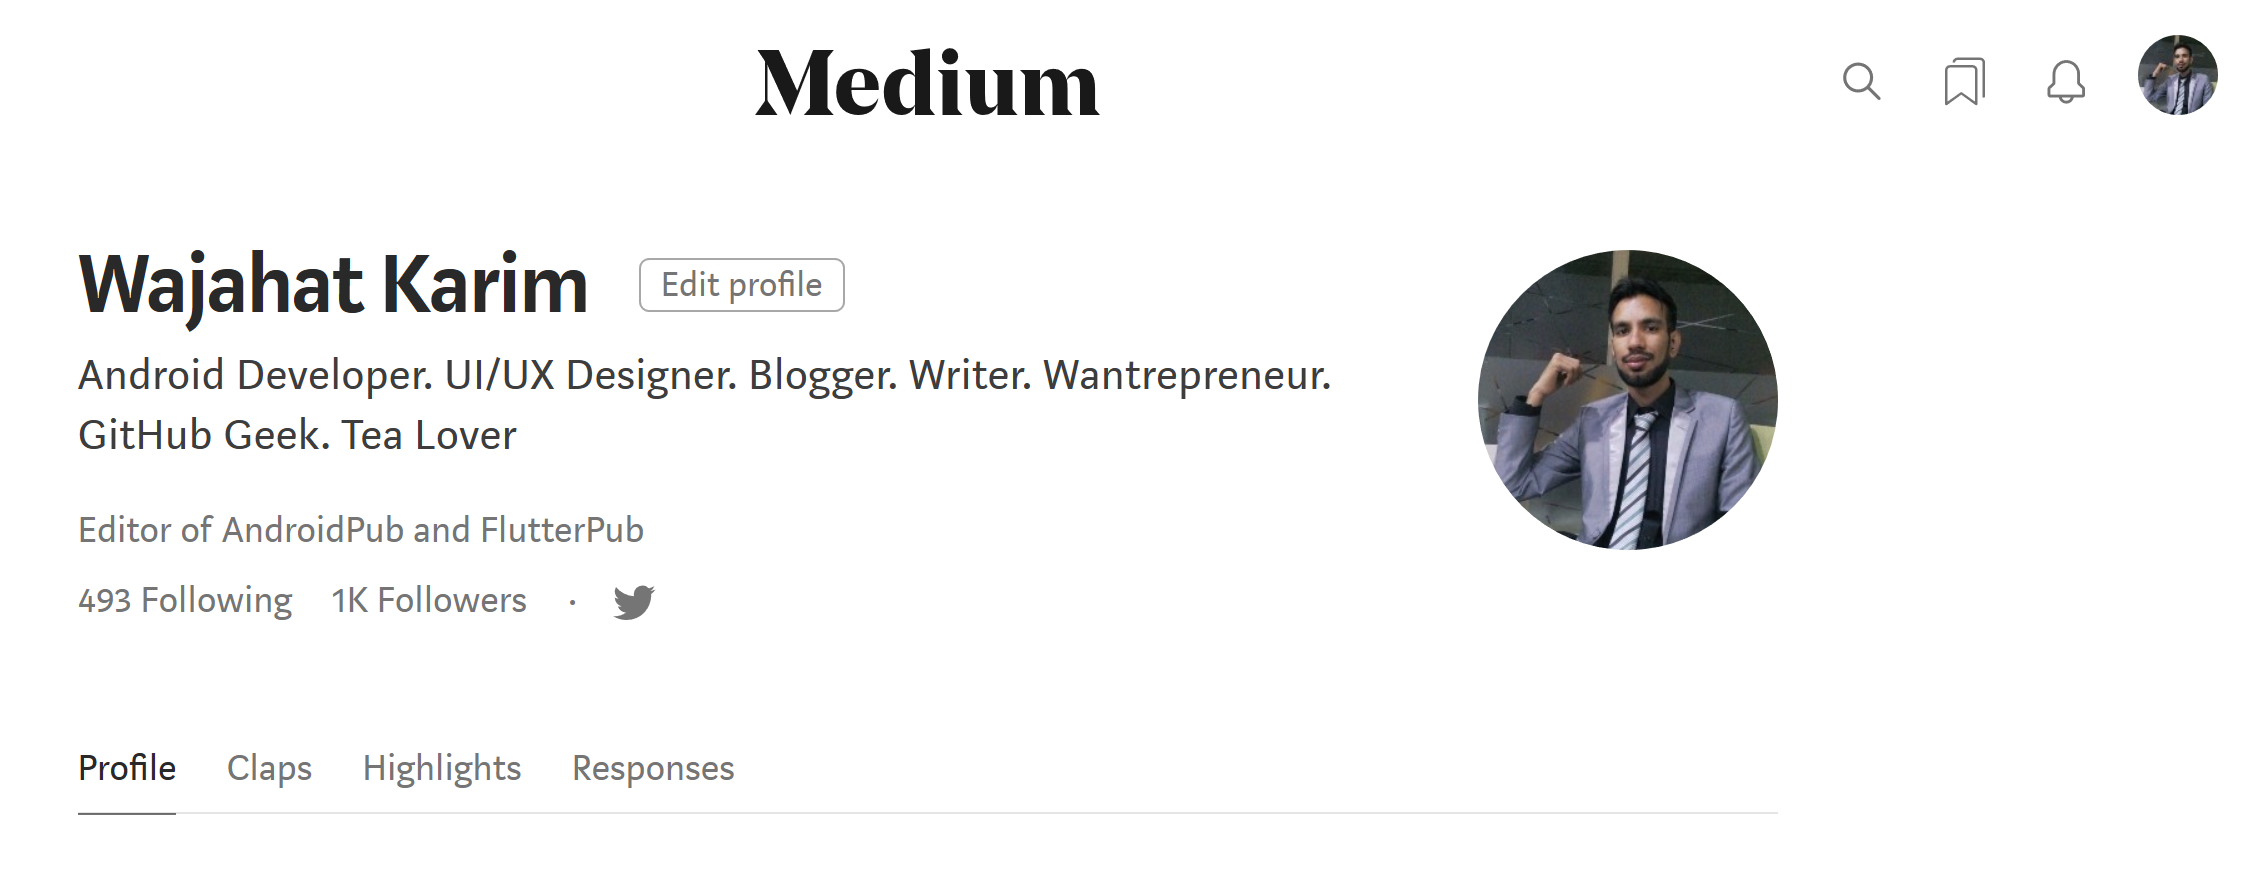 Yay! It shows **1K Followers **on [my profile](https://medium.com/@wajahatkarim3)